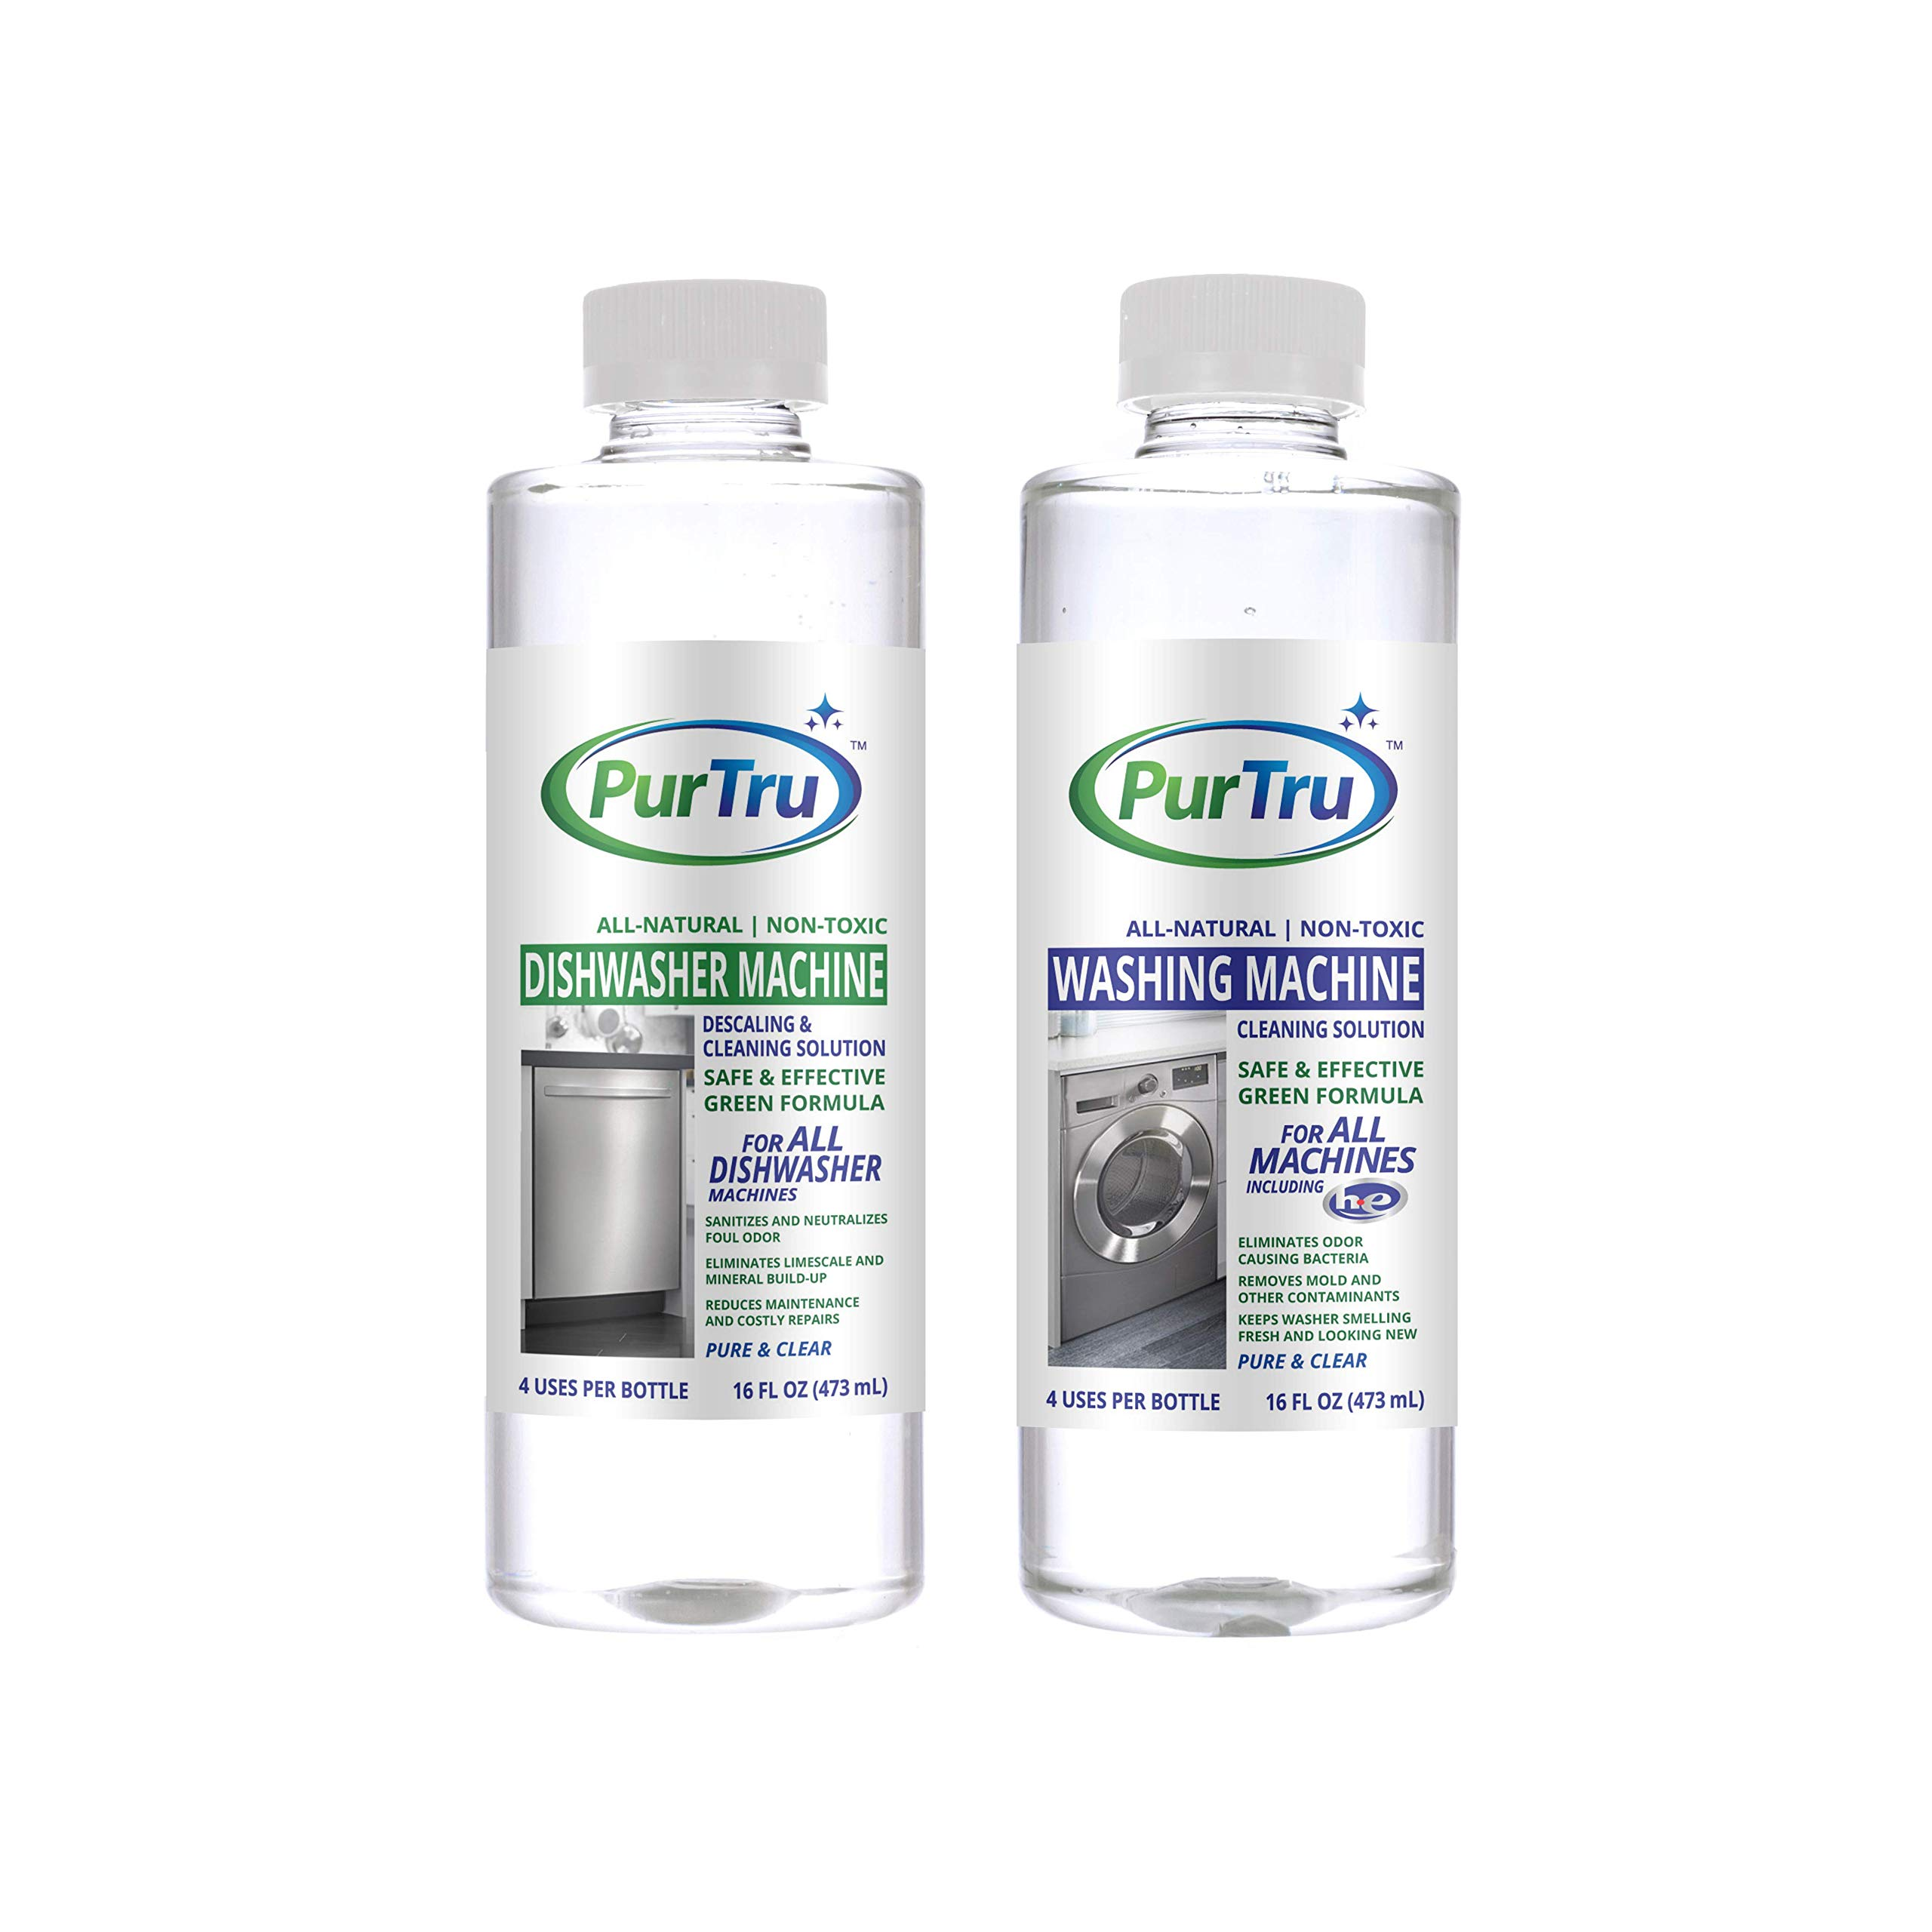 Dishwasher and Washing Machine Cleaner 2 (Pack) - All-Natural Non-Toxic and Safe Descaling & Cleaning Solution for All Types of Dishwashers and HE and Non HE Washers